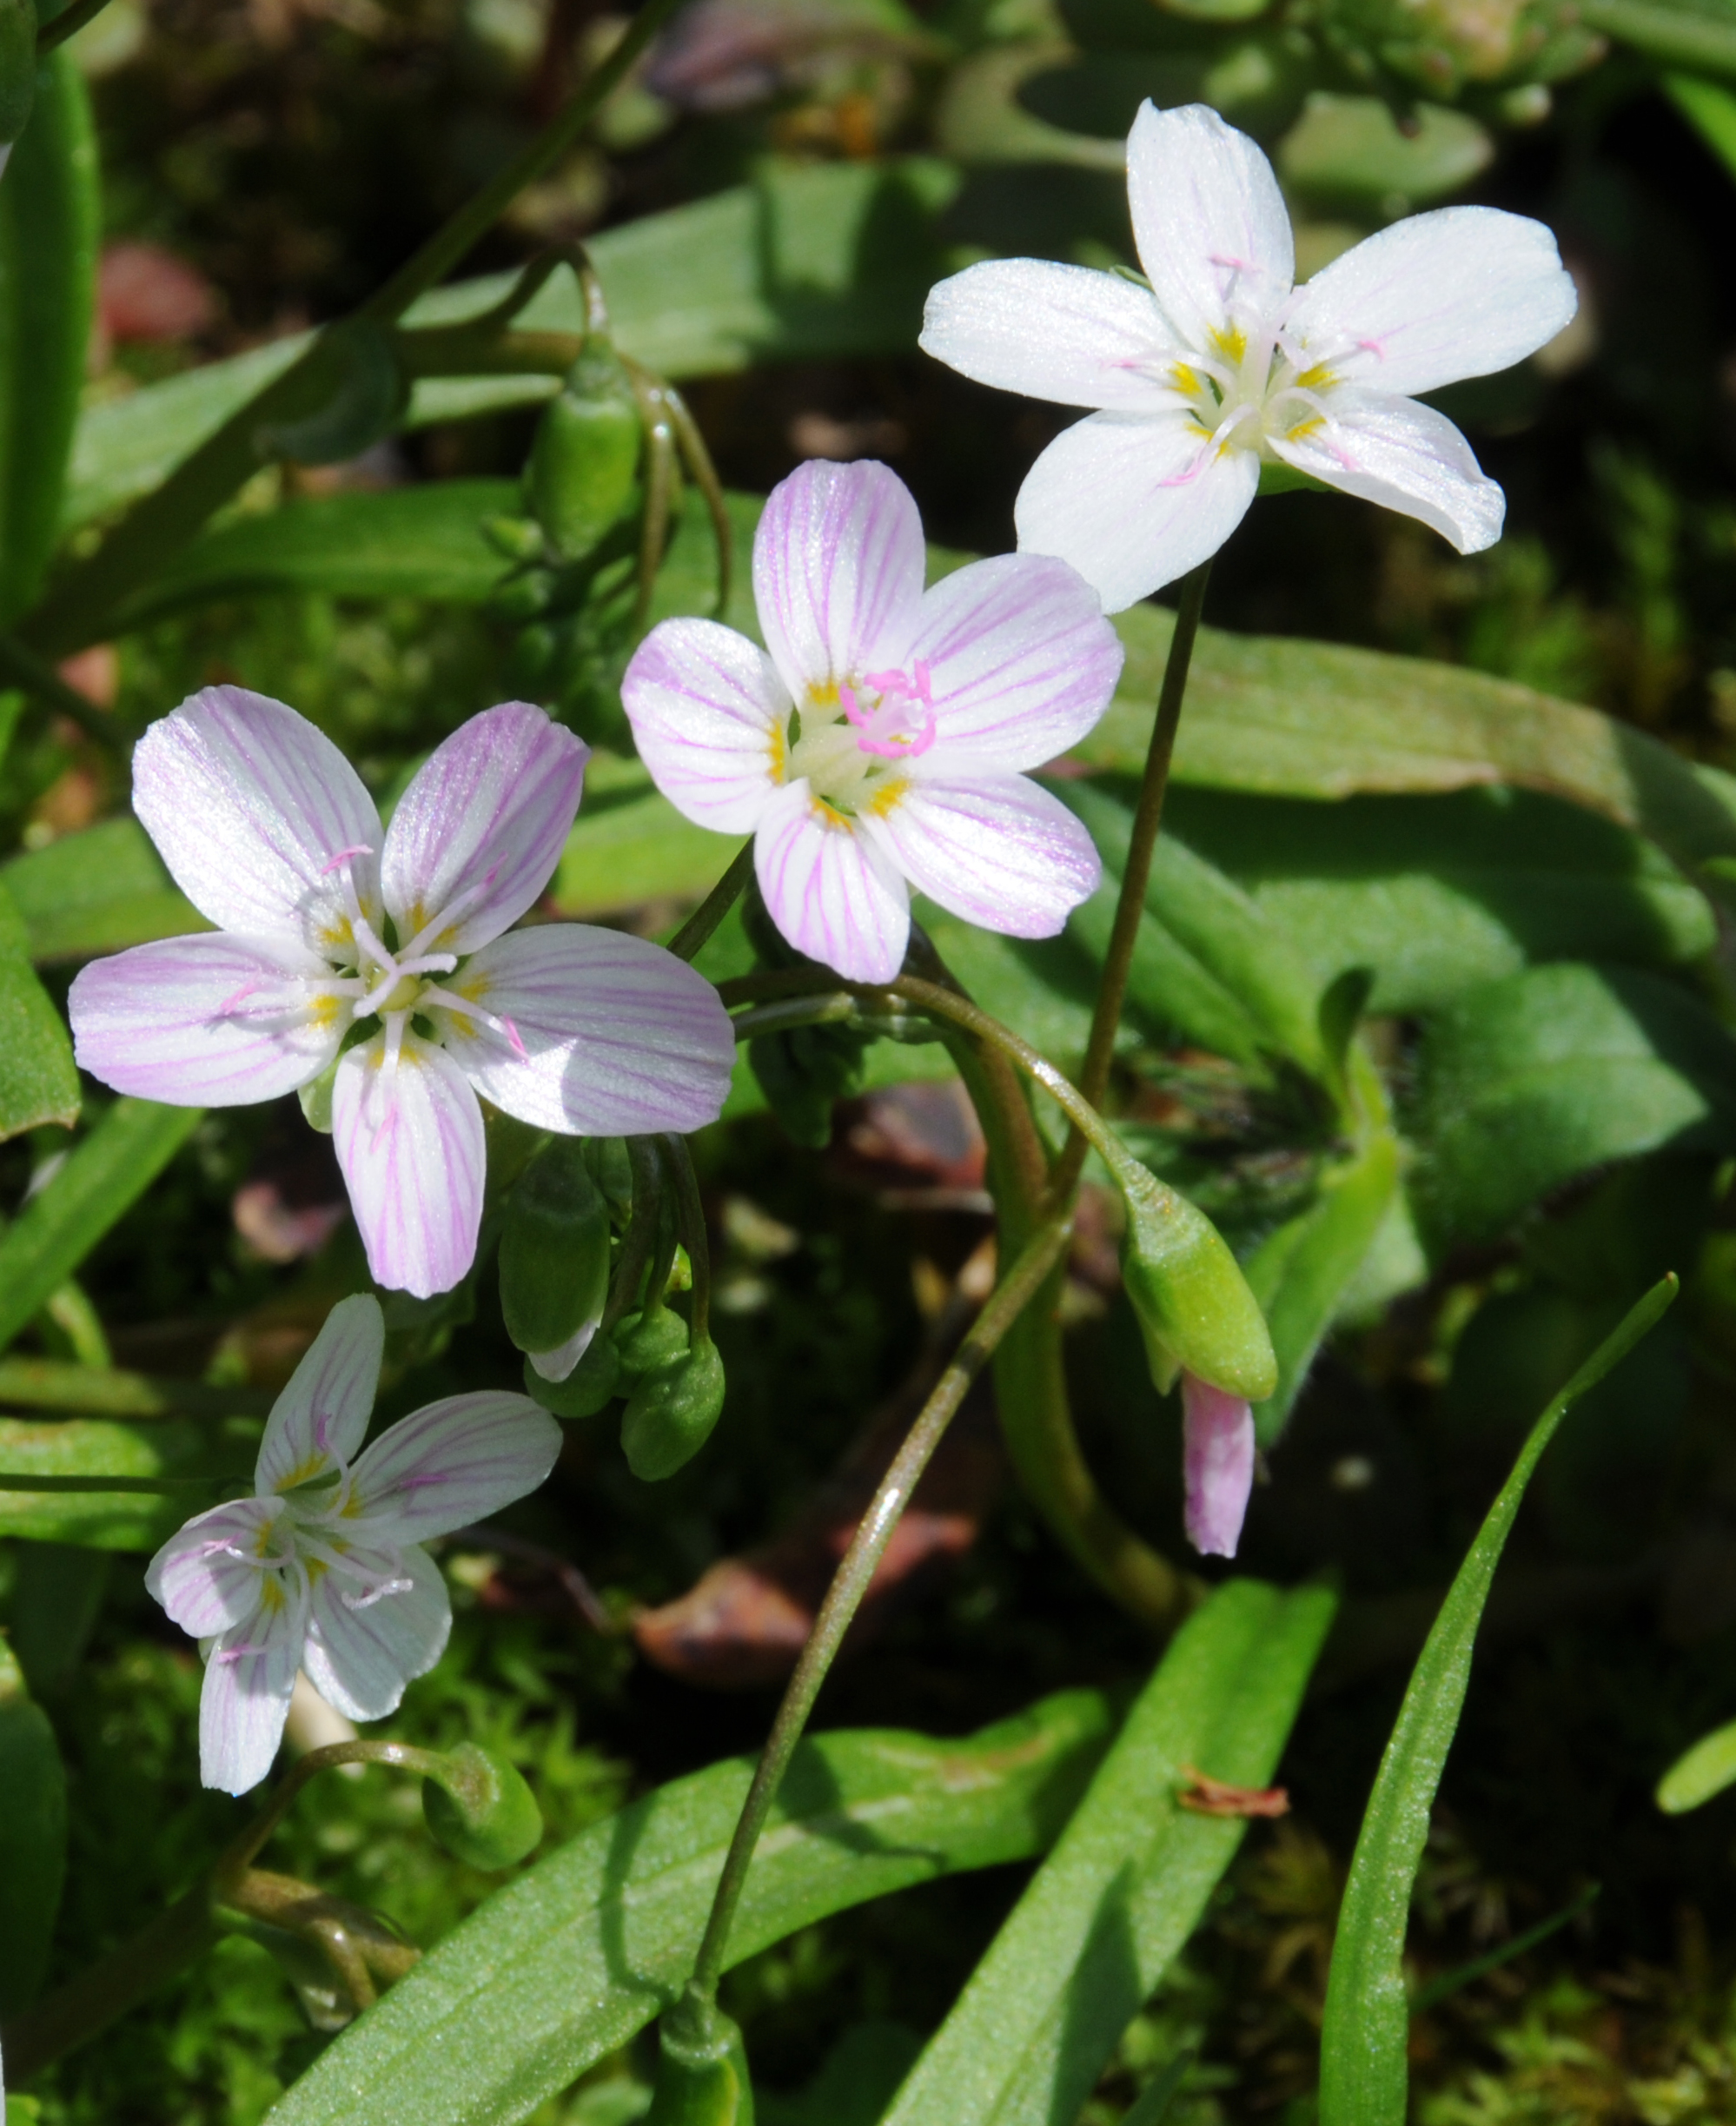 Claytonia virginica, or Virginia spring-beauty